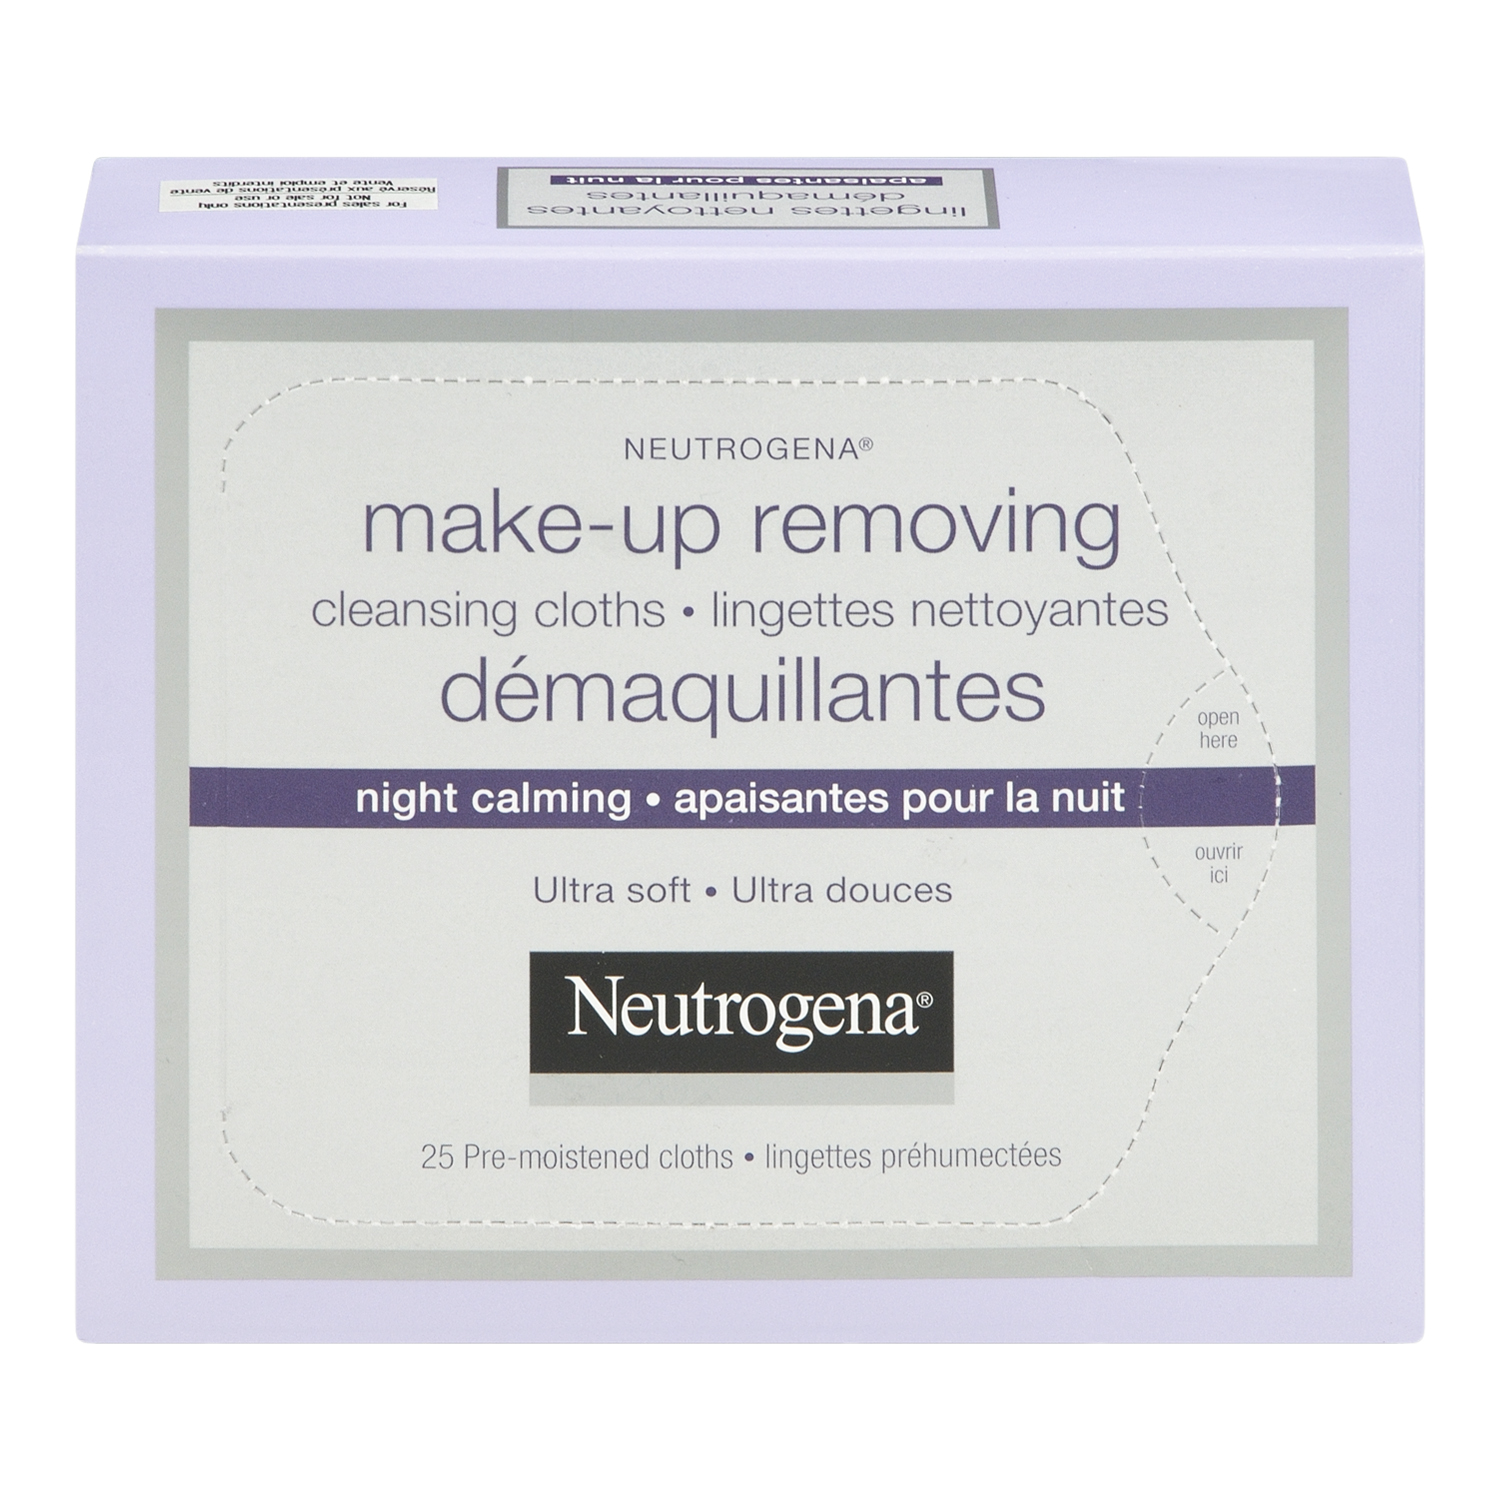 Neutrogena® Makeup Removing Cleansing Cloths Night Calming